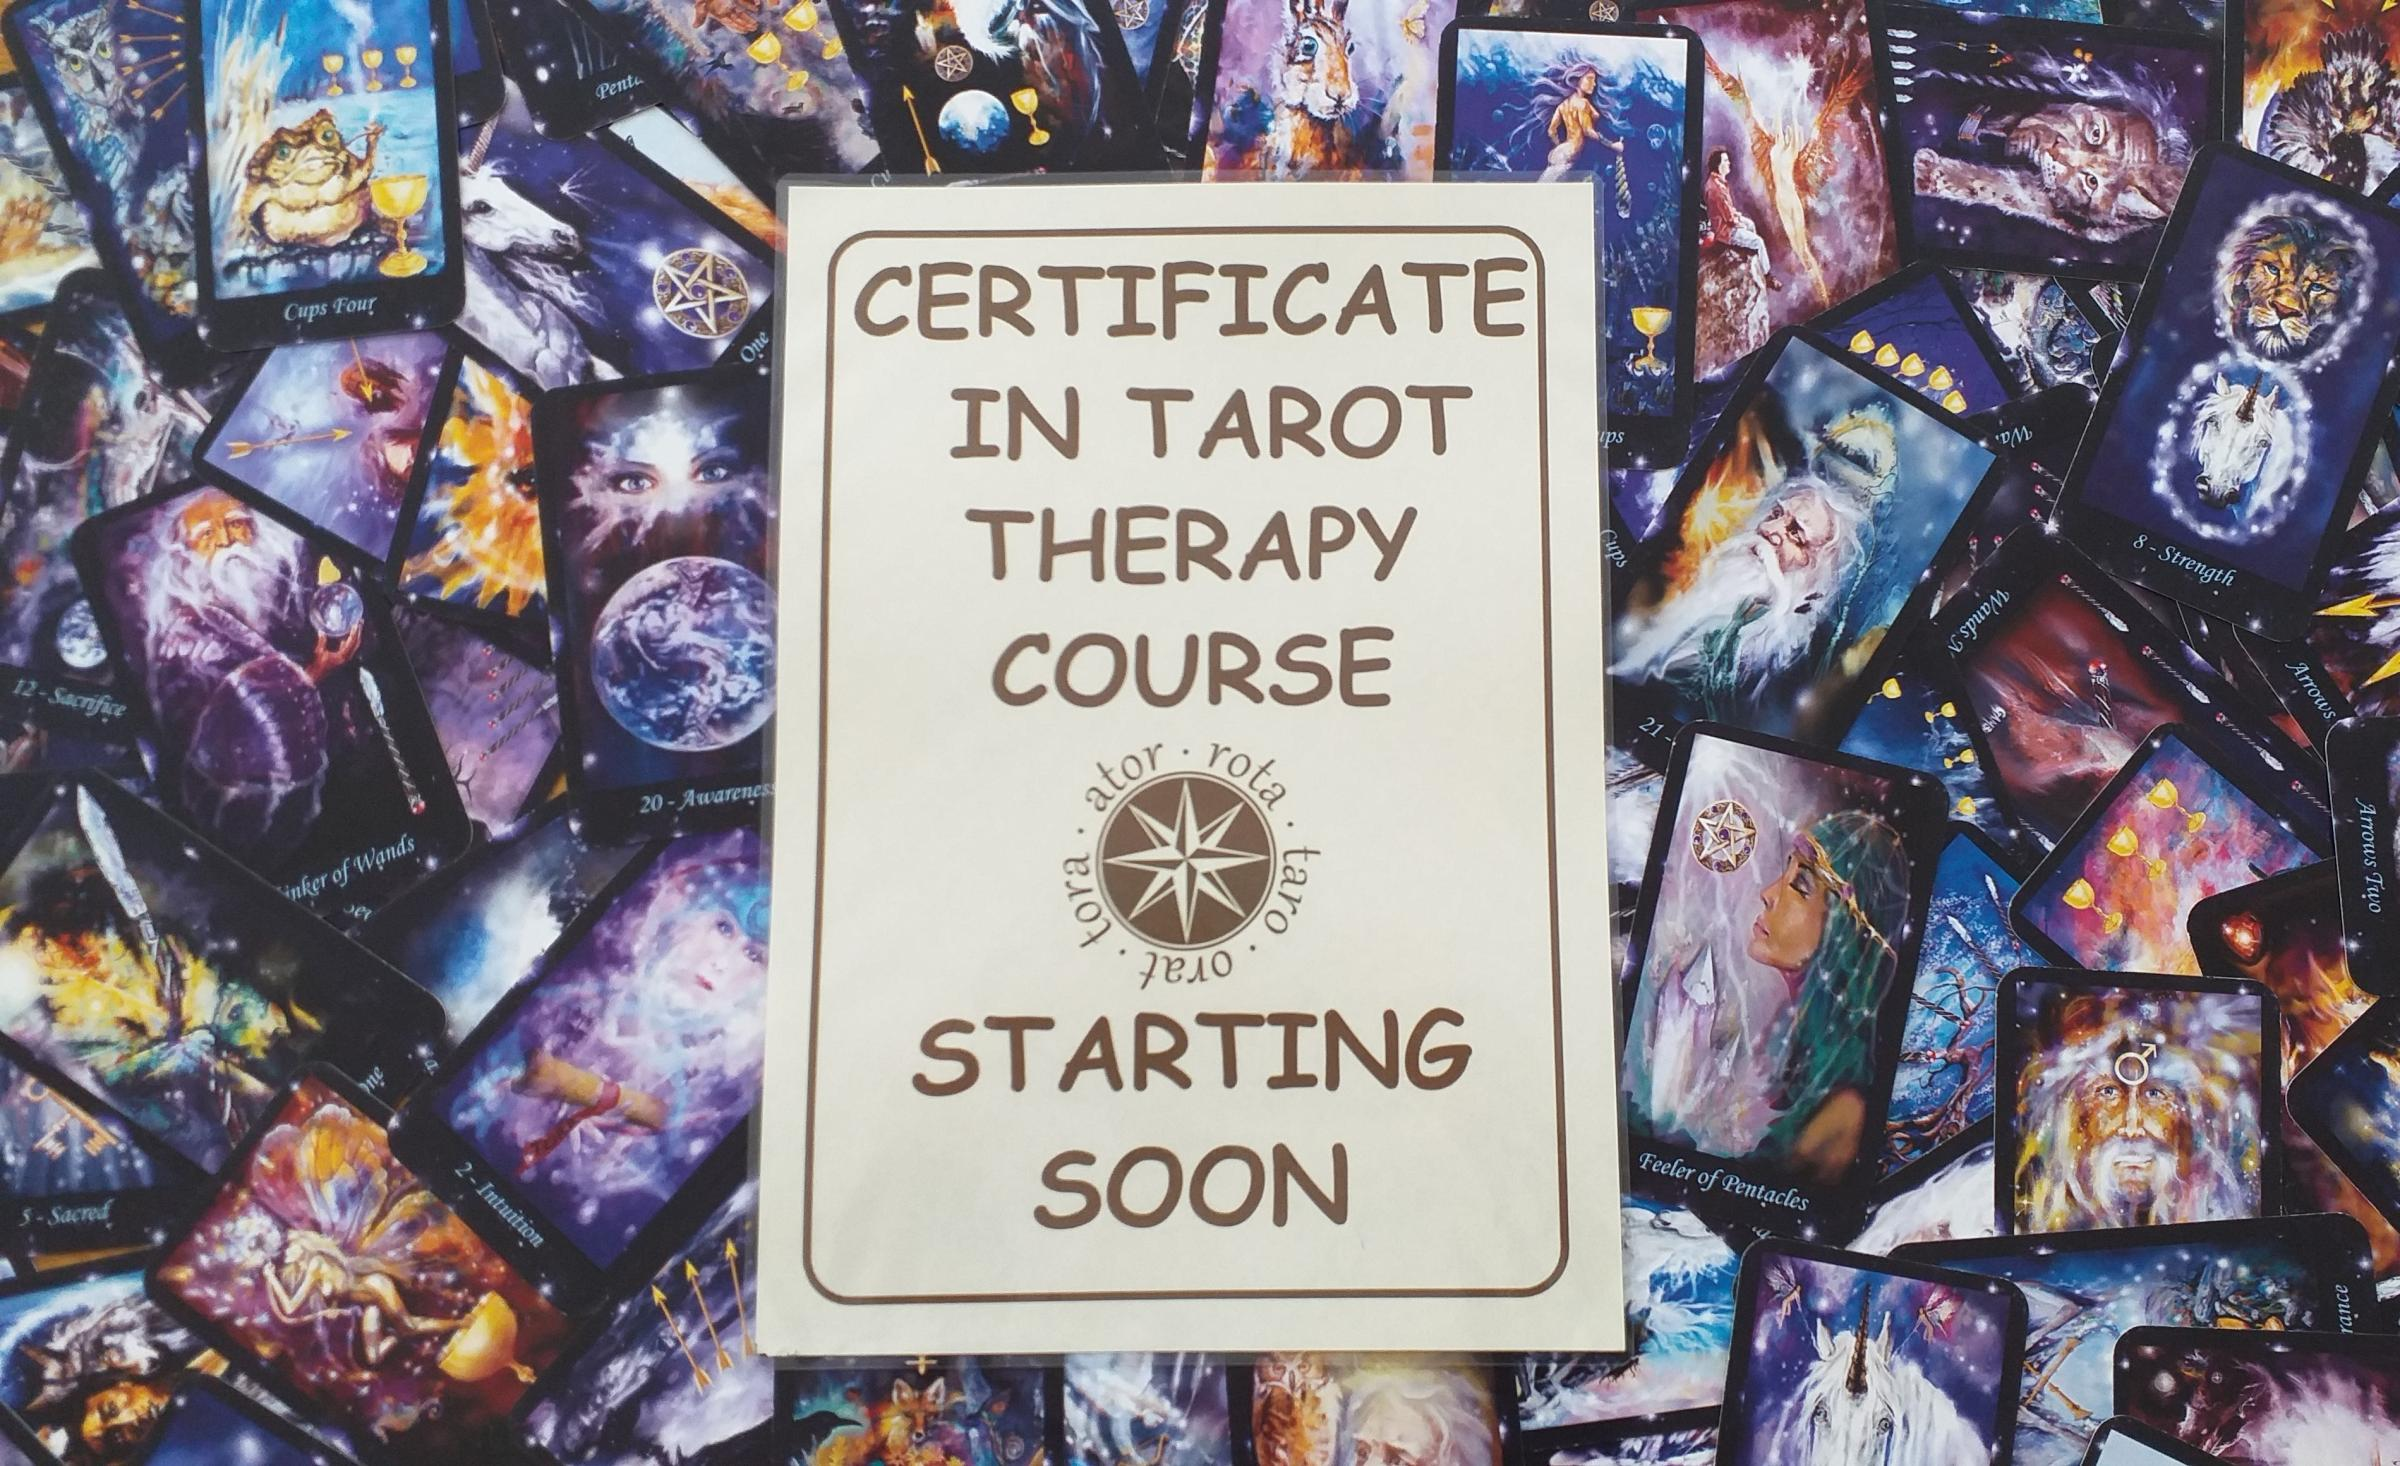 Certificate in Tarot Therapy